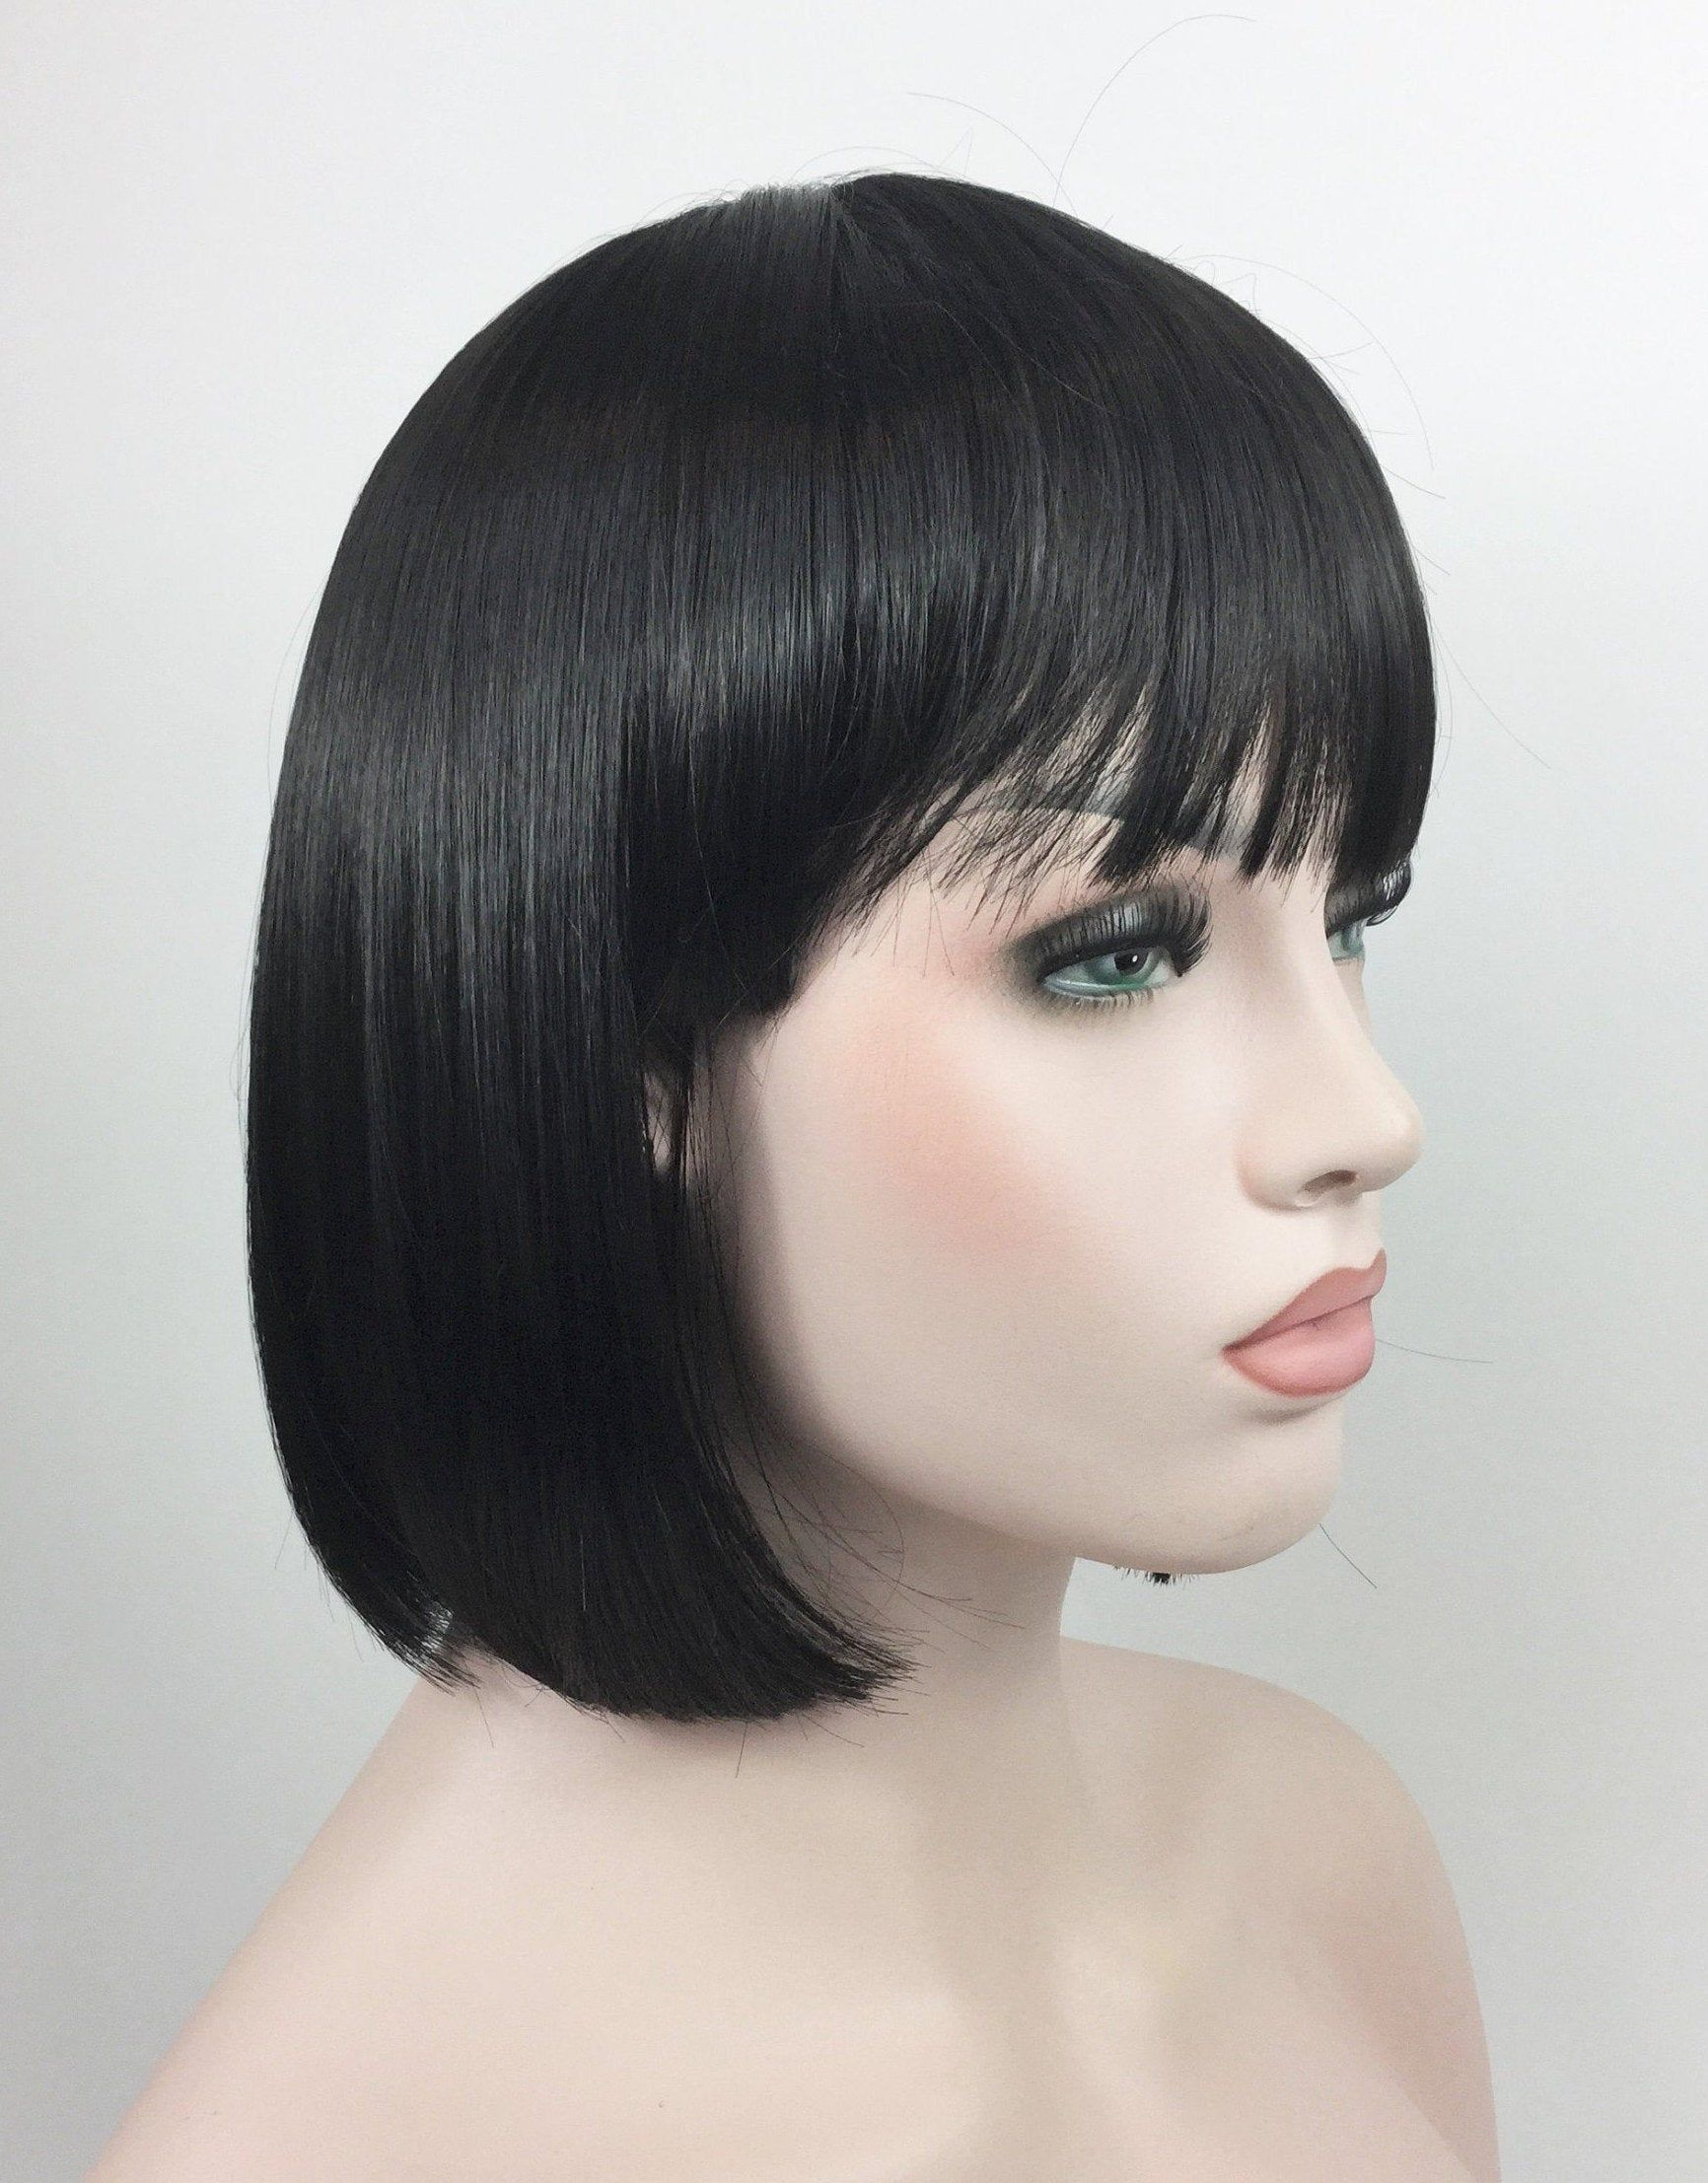 Premium Quality Bob Style Theatrical Halloween Costume Wig By Etsy In 2020 Halloween Wigs Short Black Hair Wig Halloween Costume Wigs